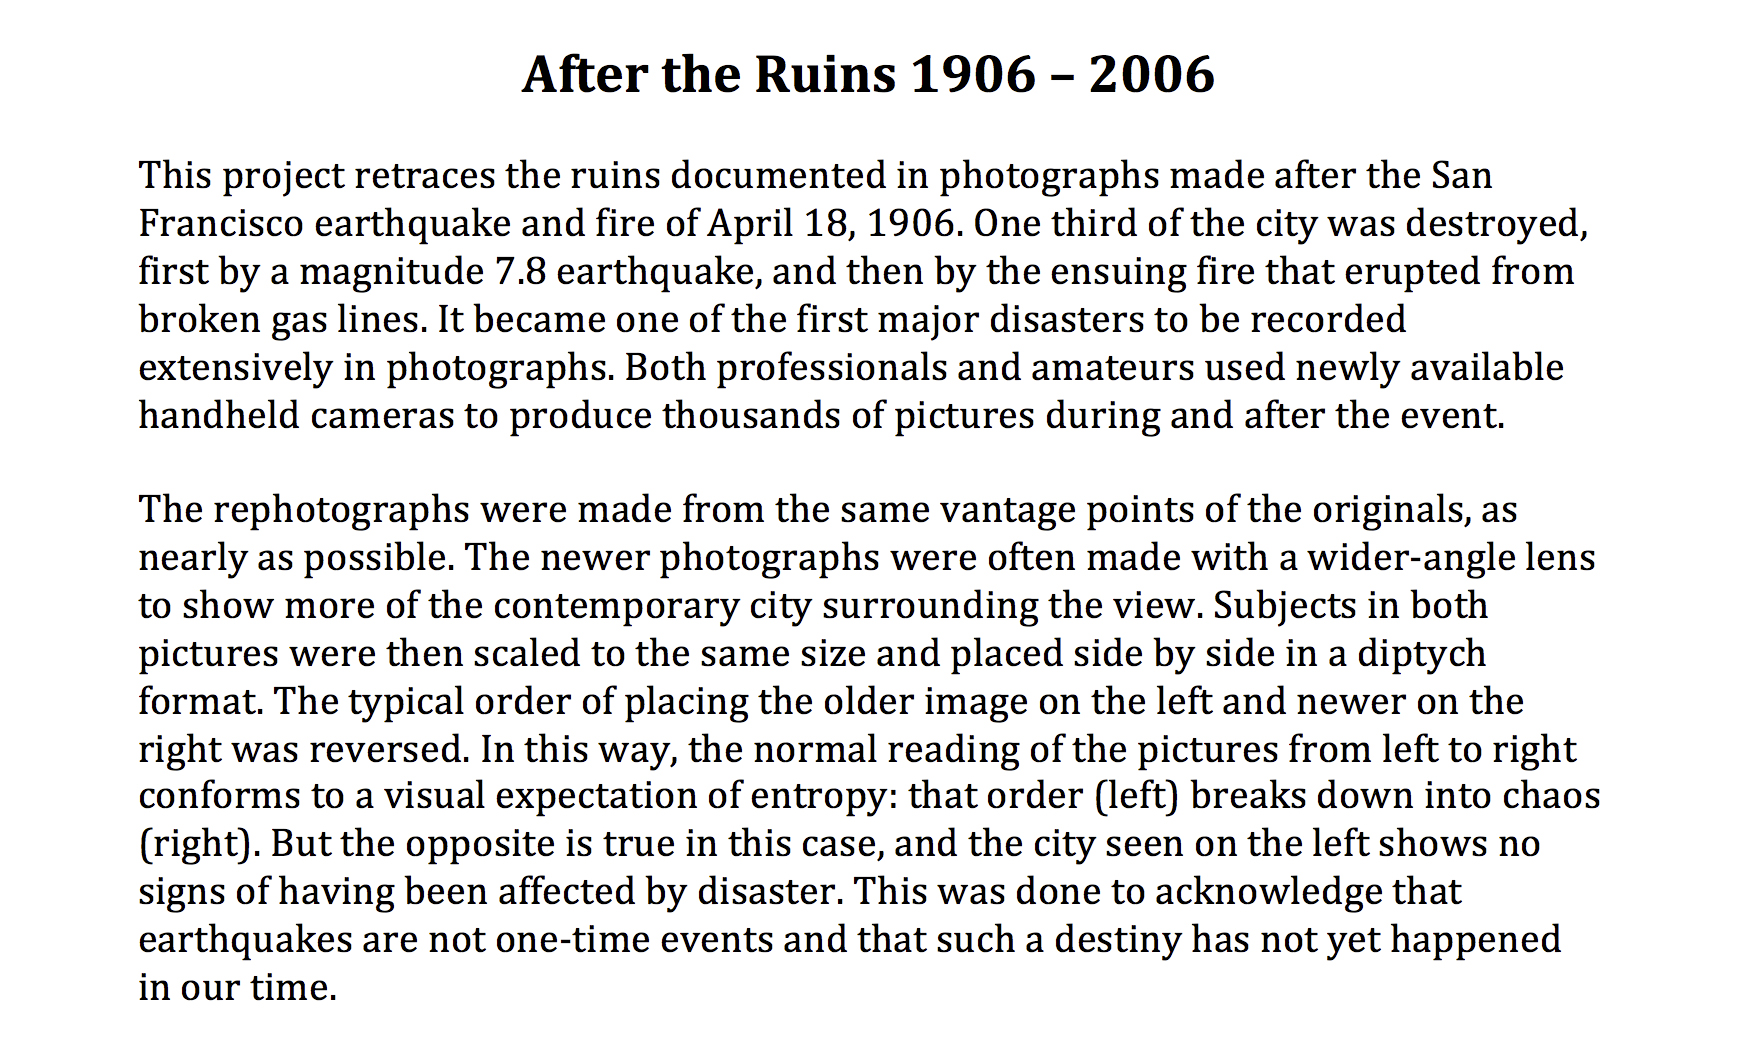 Statement for After the Ruins.jpg